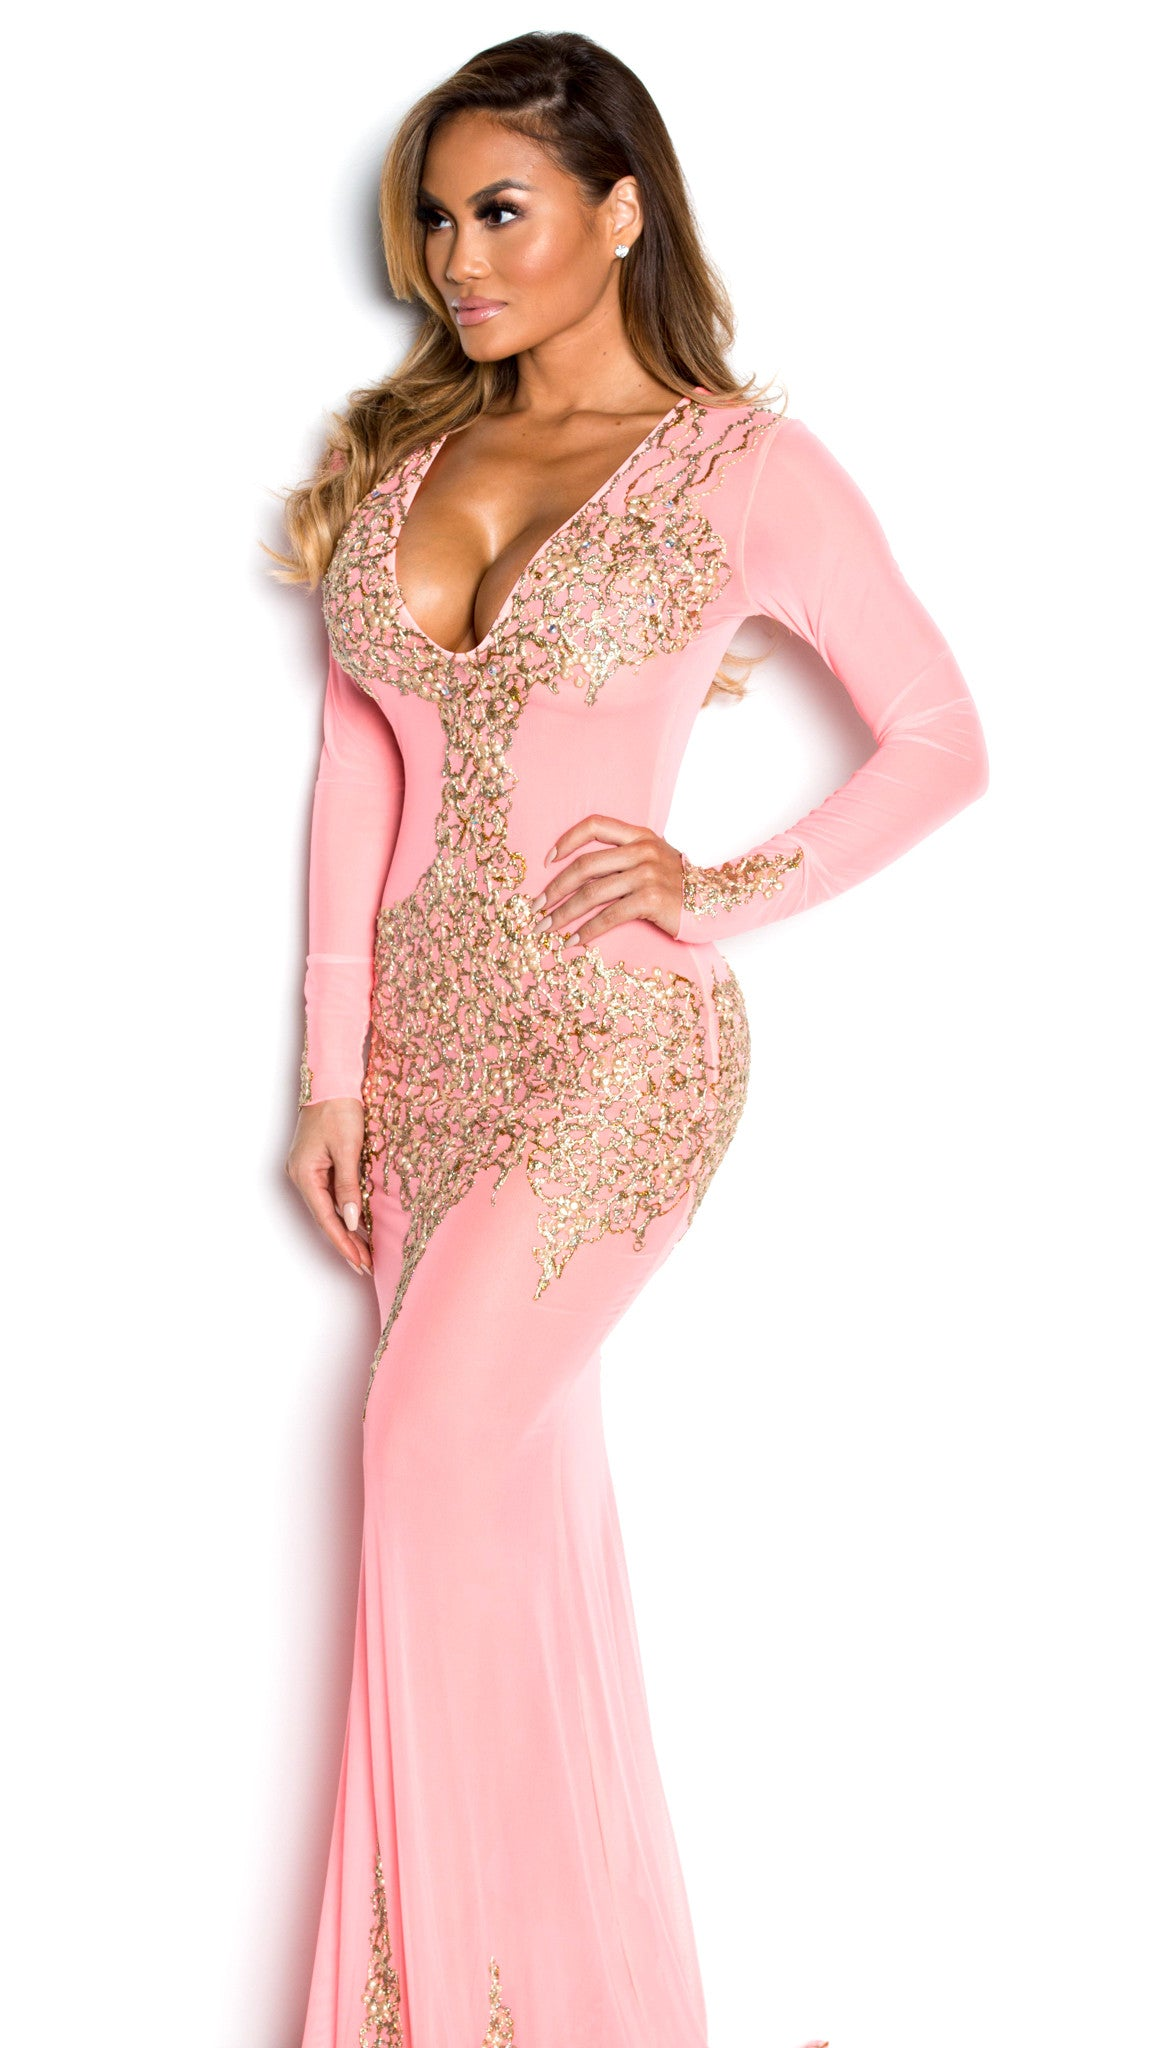 BEYONCE GOWN IN PINK WITH GOLD - HOLT